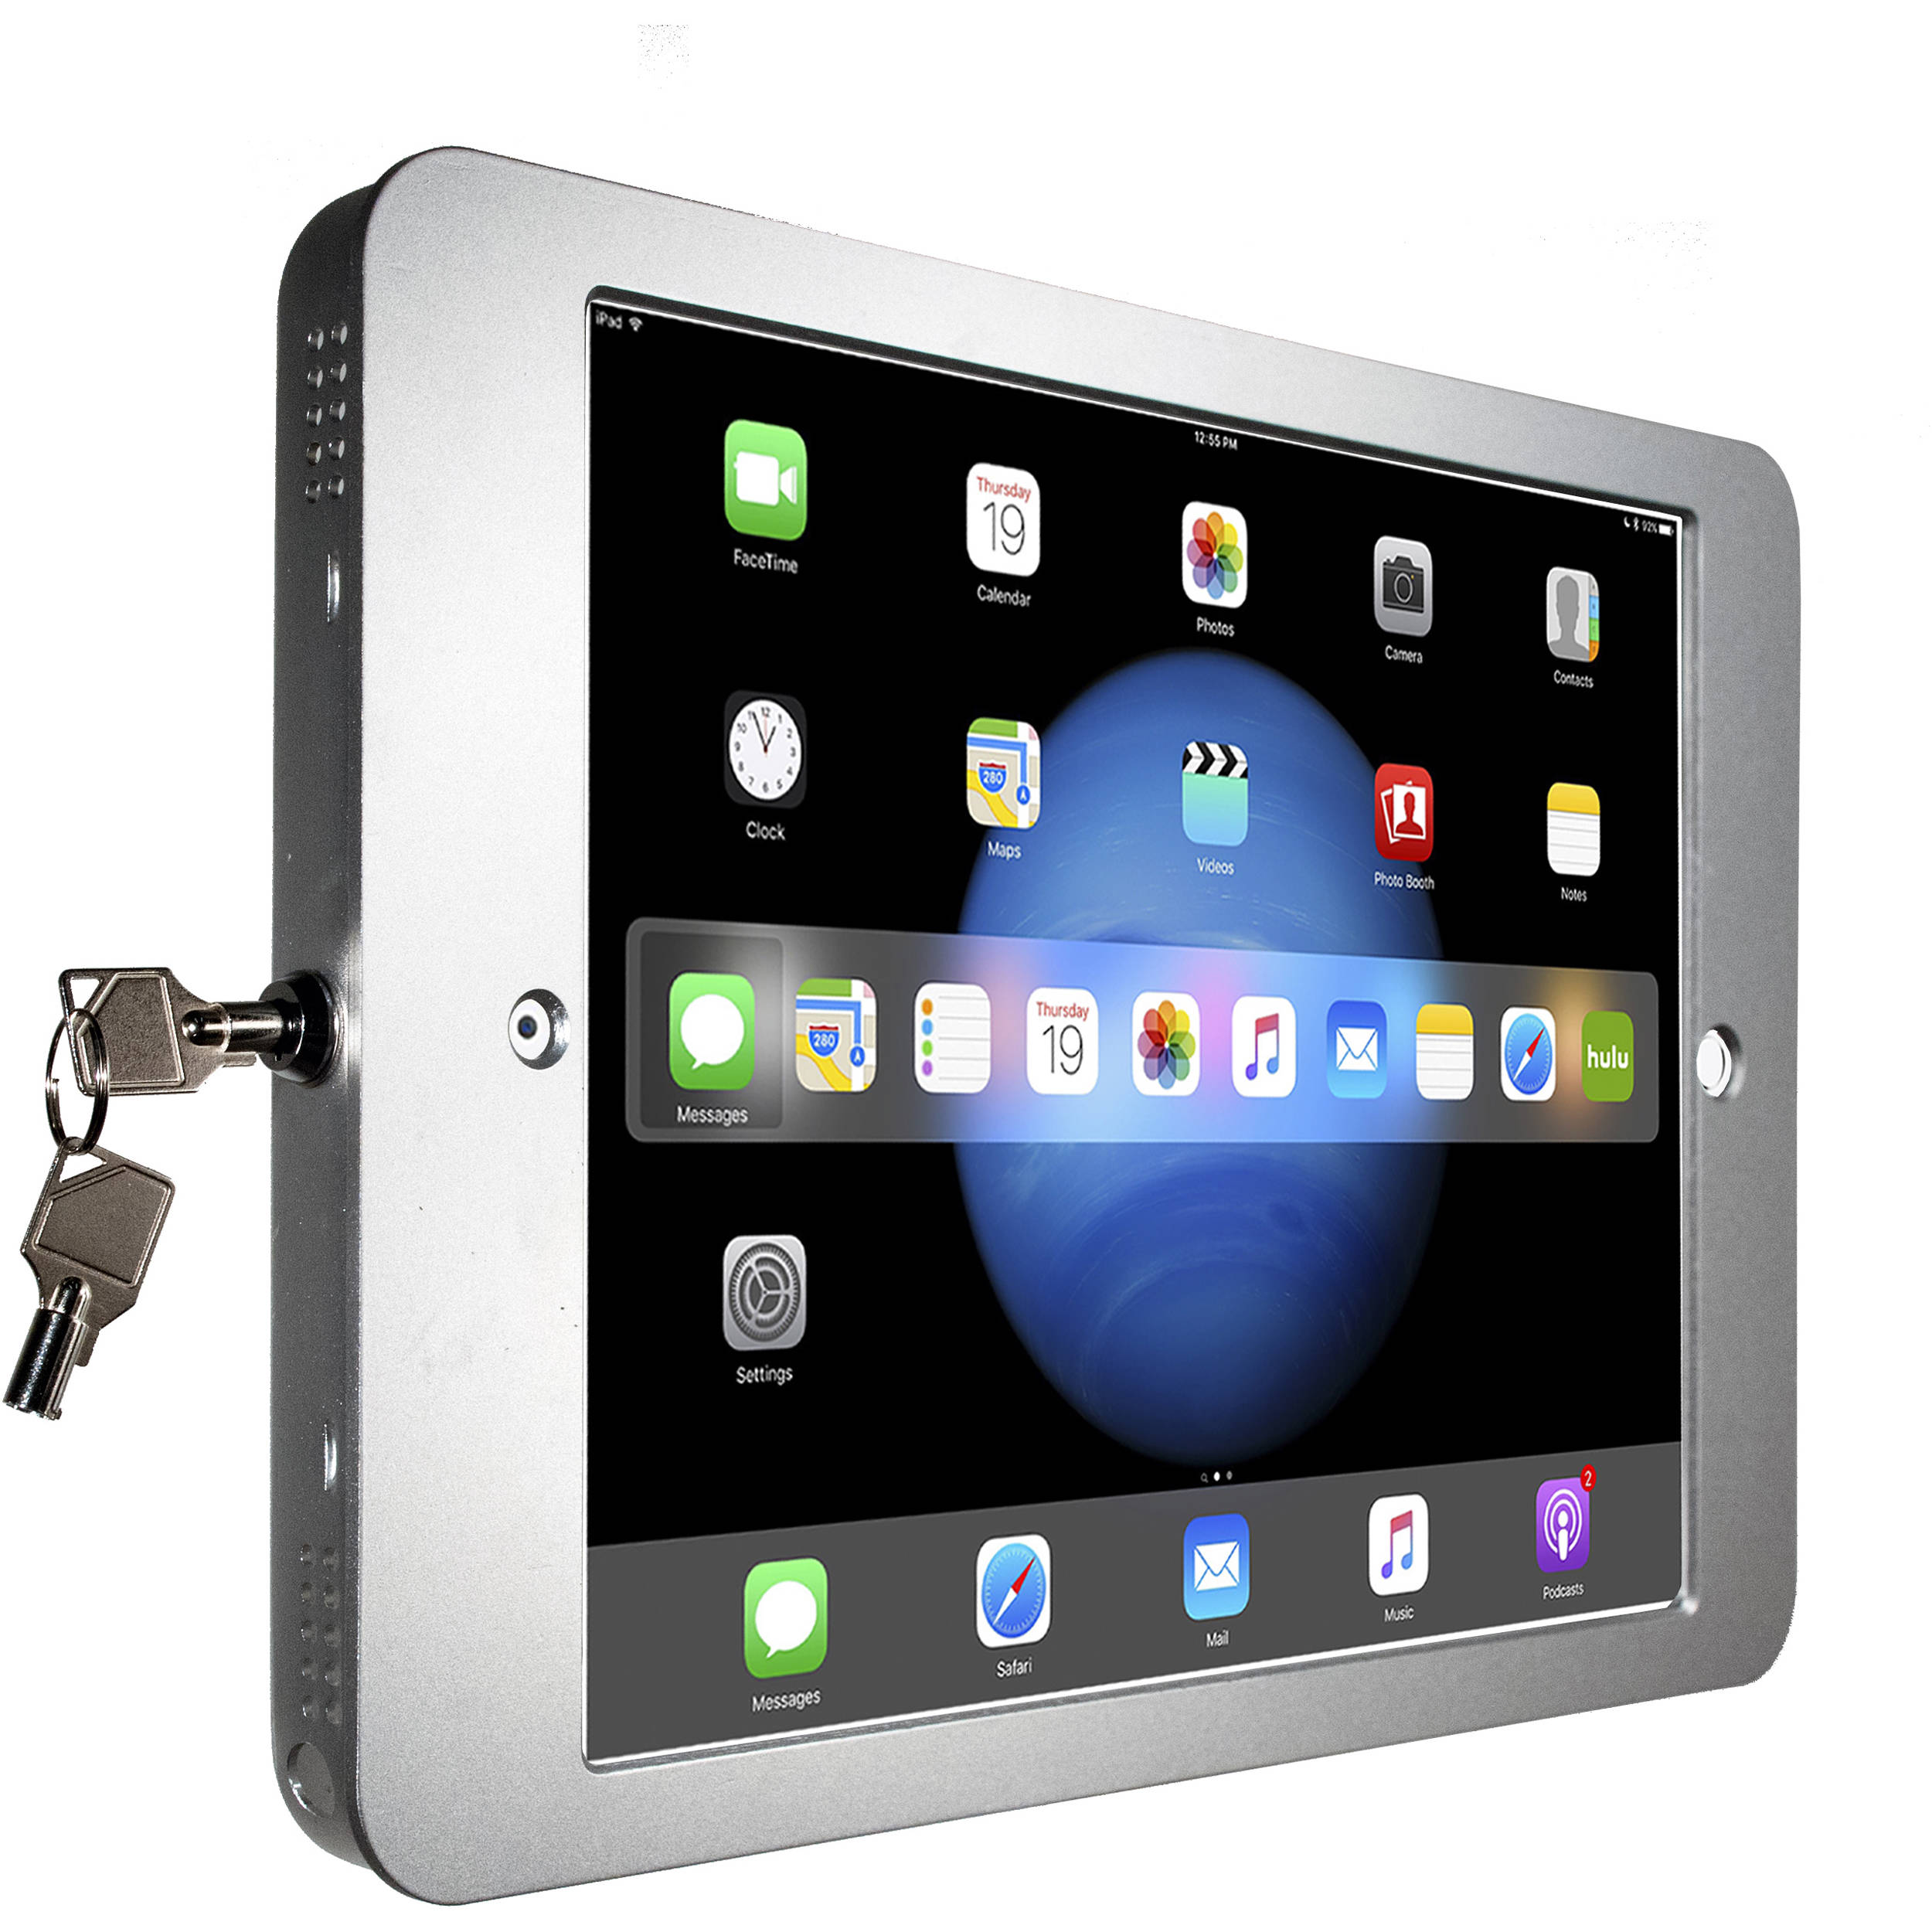 Cta Digital Security Wall Enclosure For Apple Ipad Pro Pad